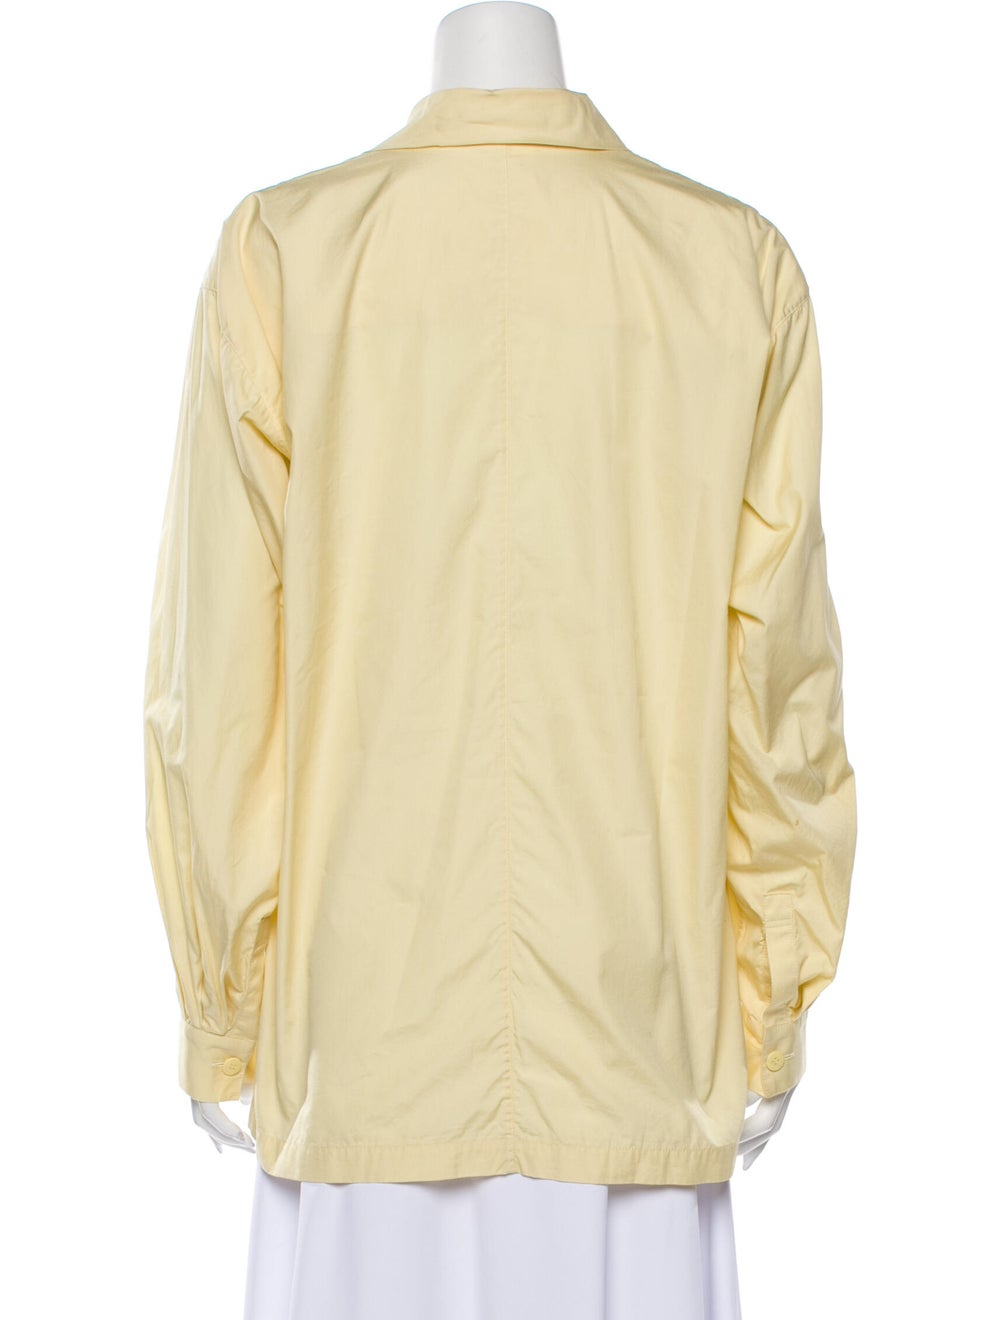 Issey Miyake 1980 Long Sleeve Button-Up Top Yellow - image 3